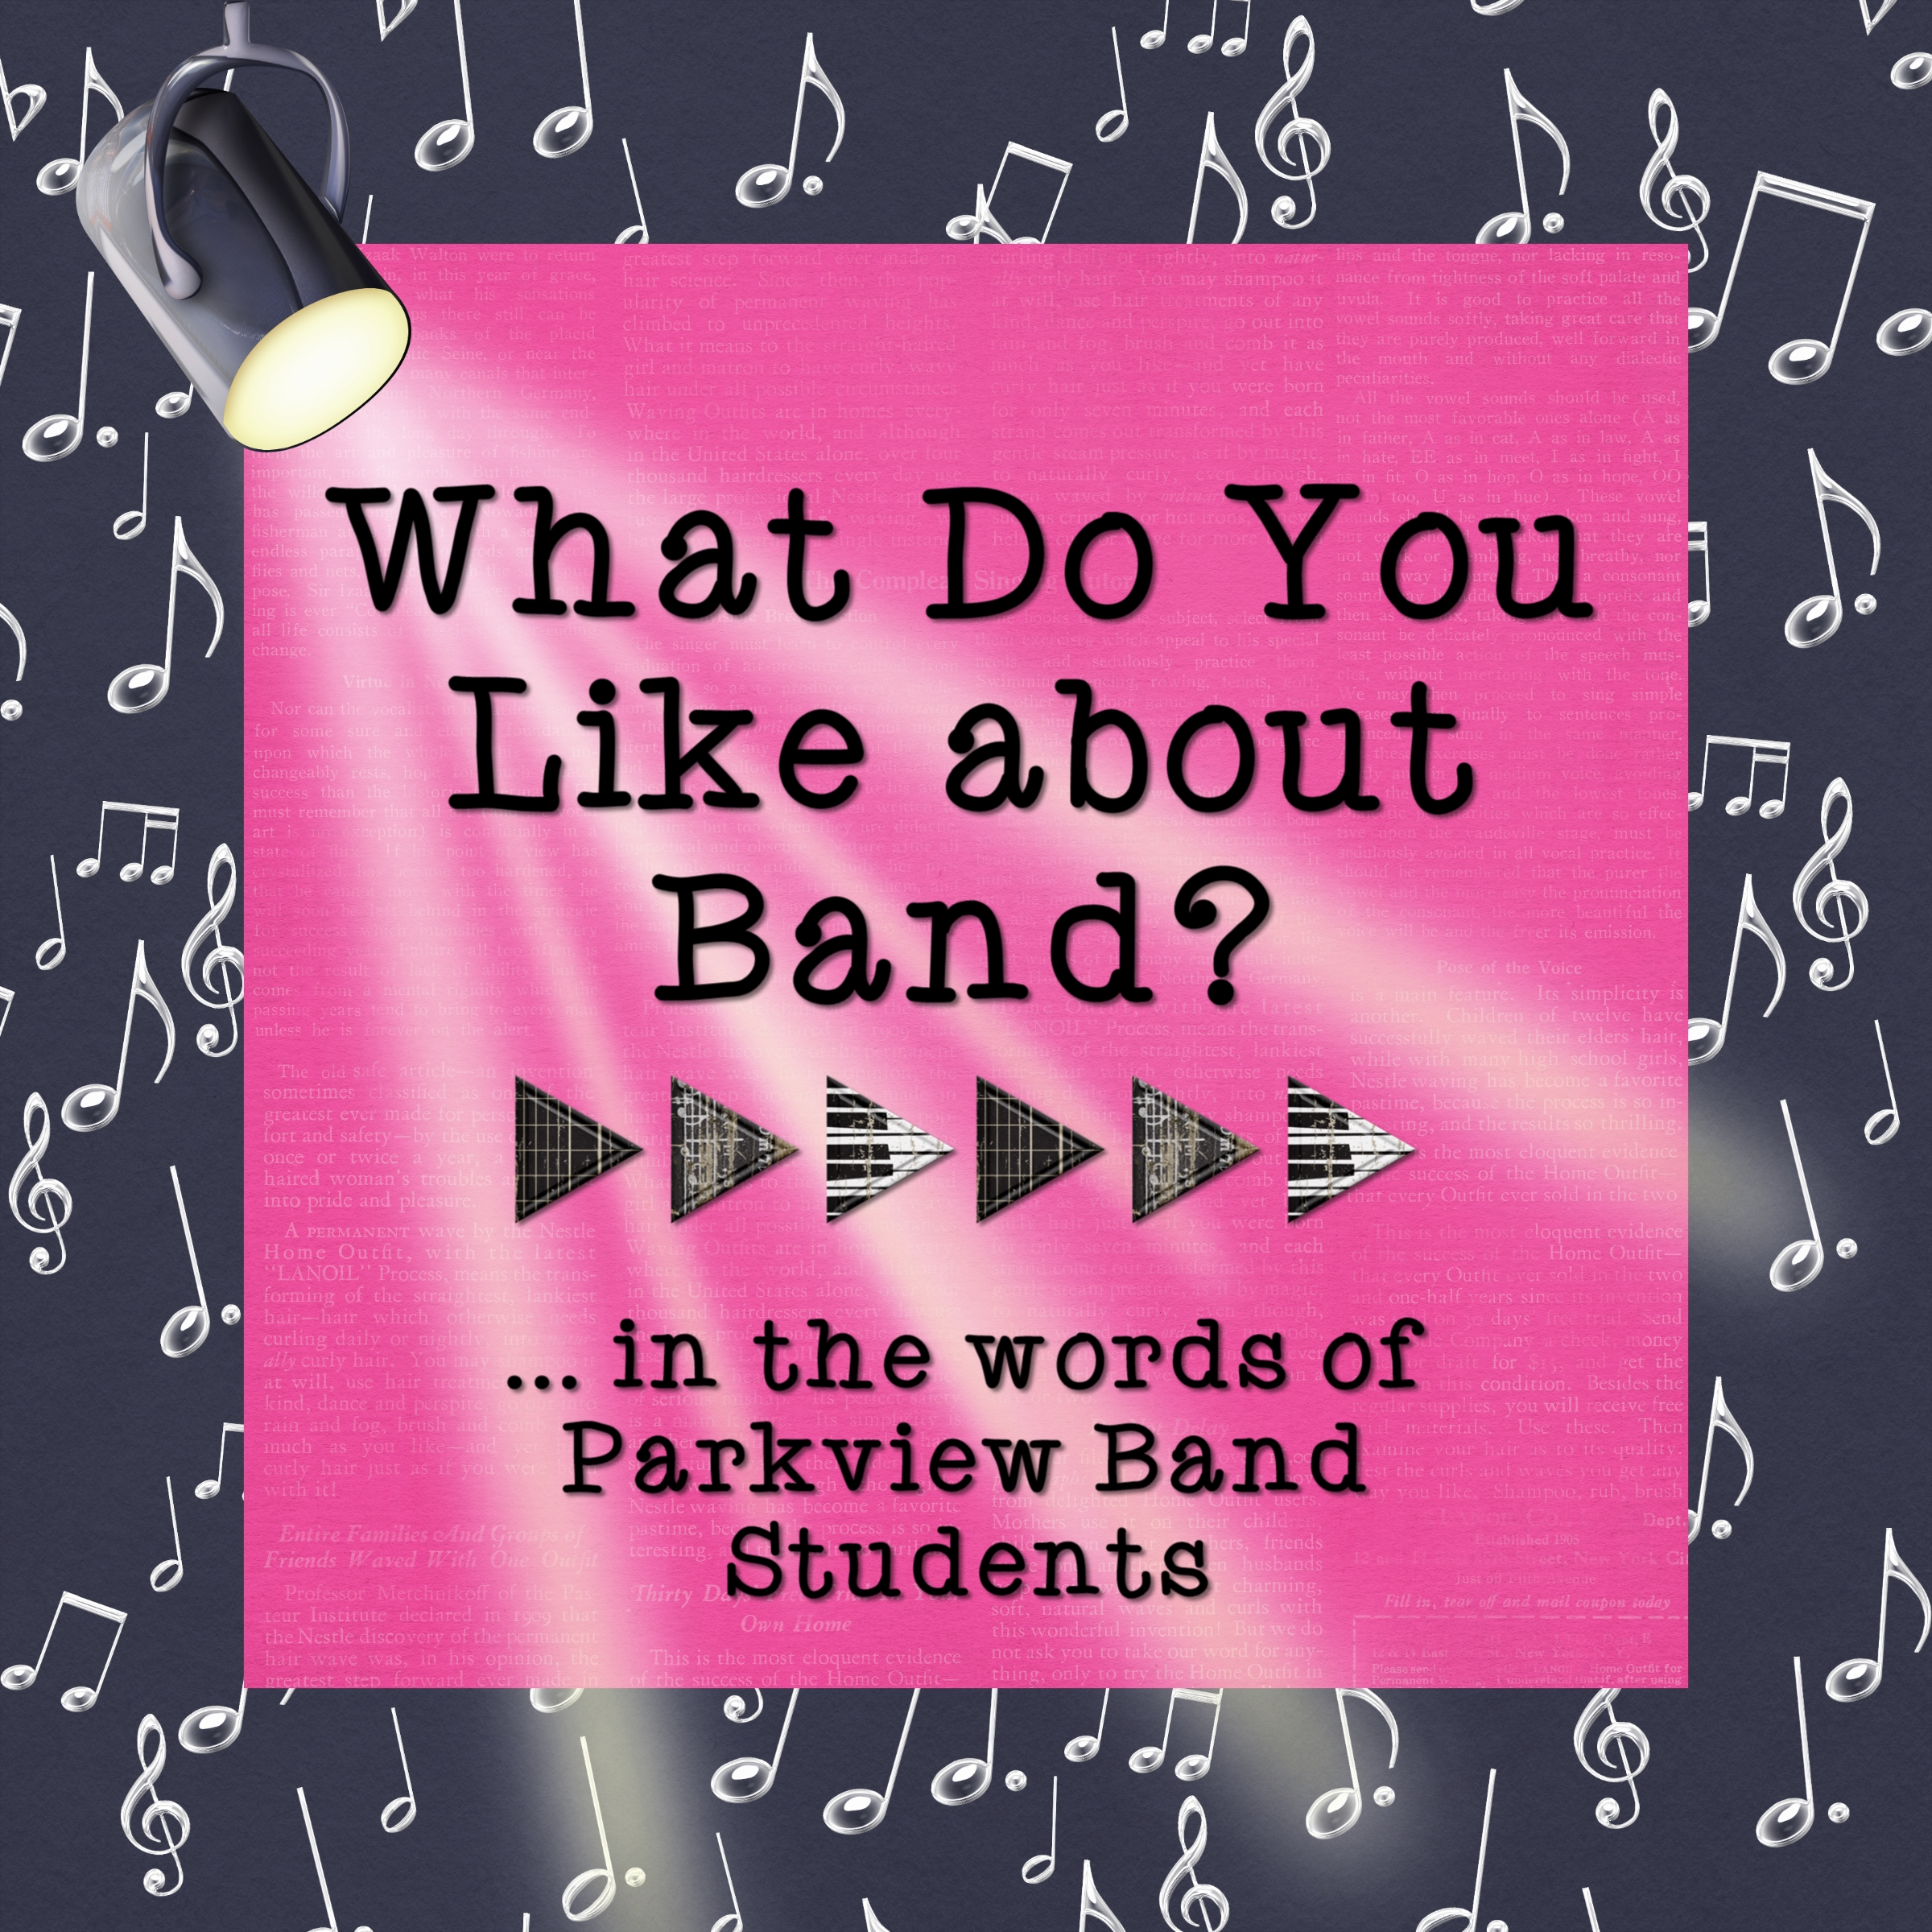 Parkview Band Quotes 2018 - Page 001